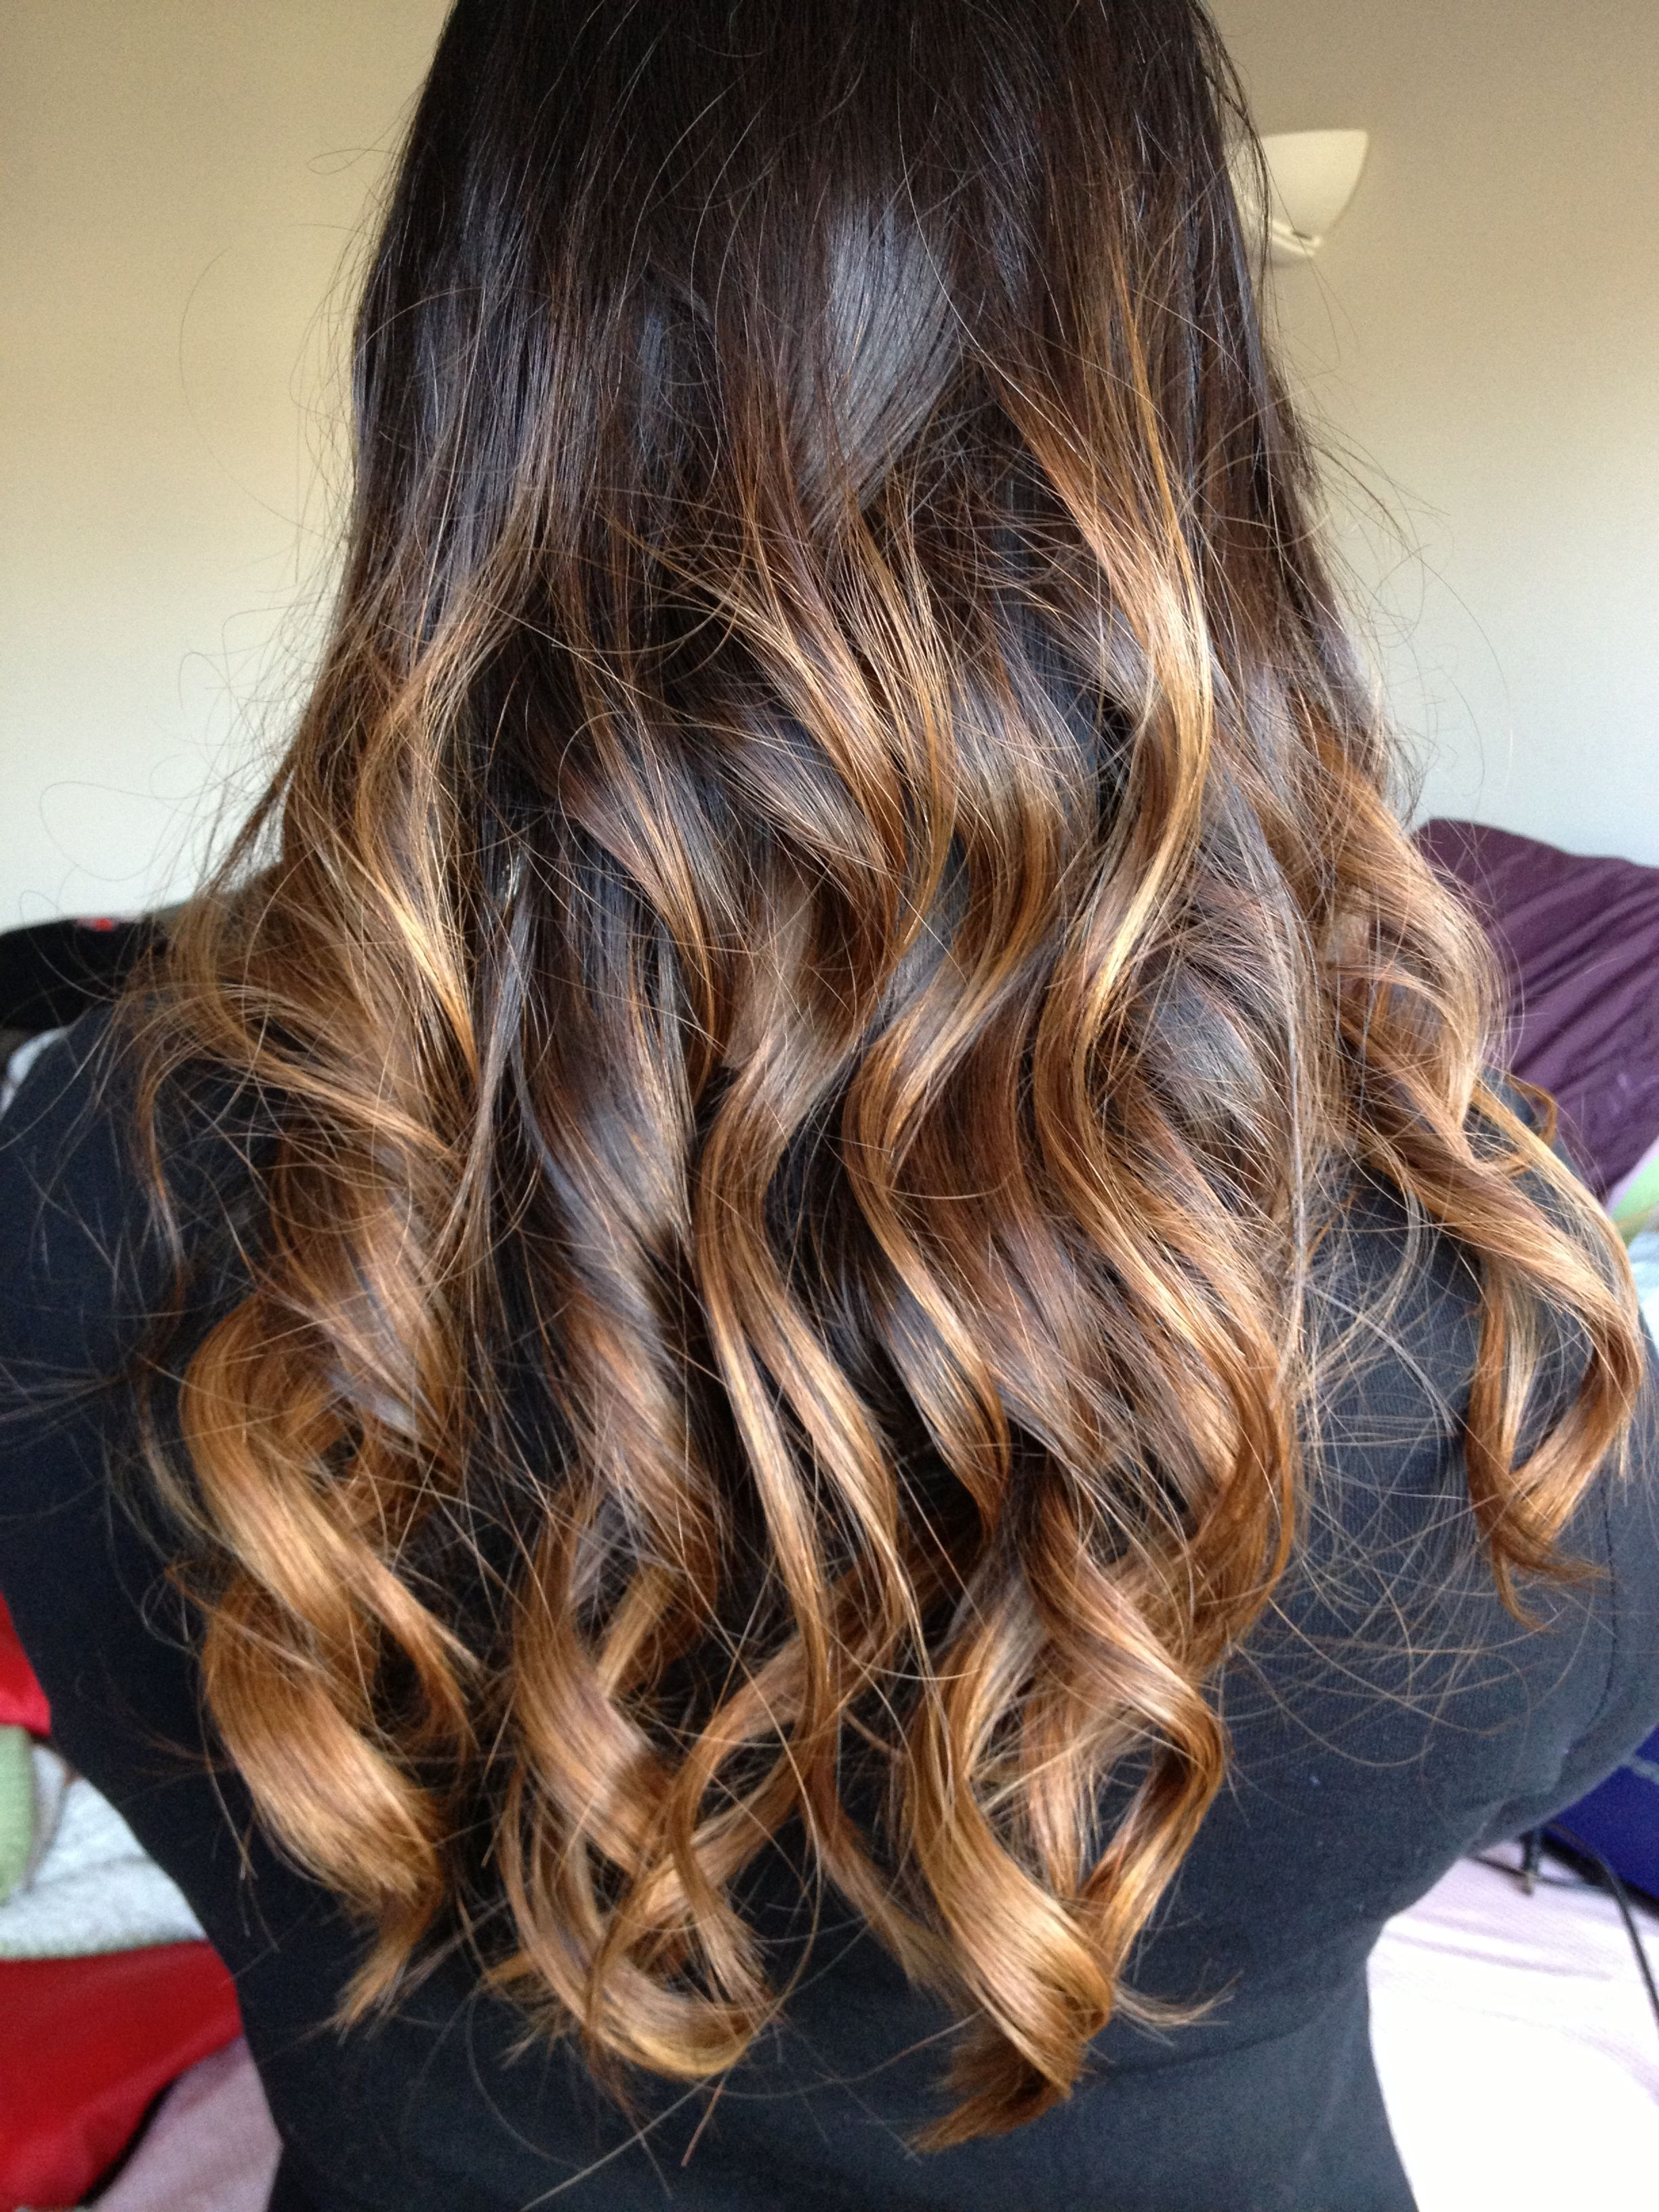 Finally got my black to caramel ombre all thanks to an amazing